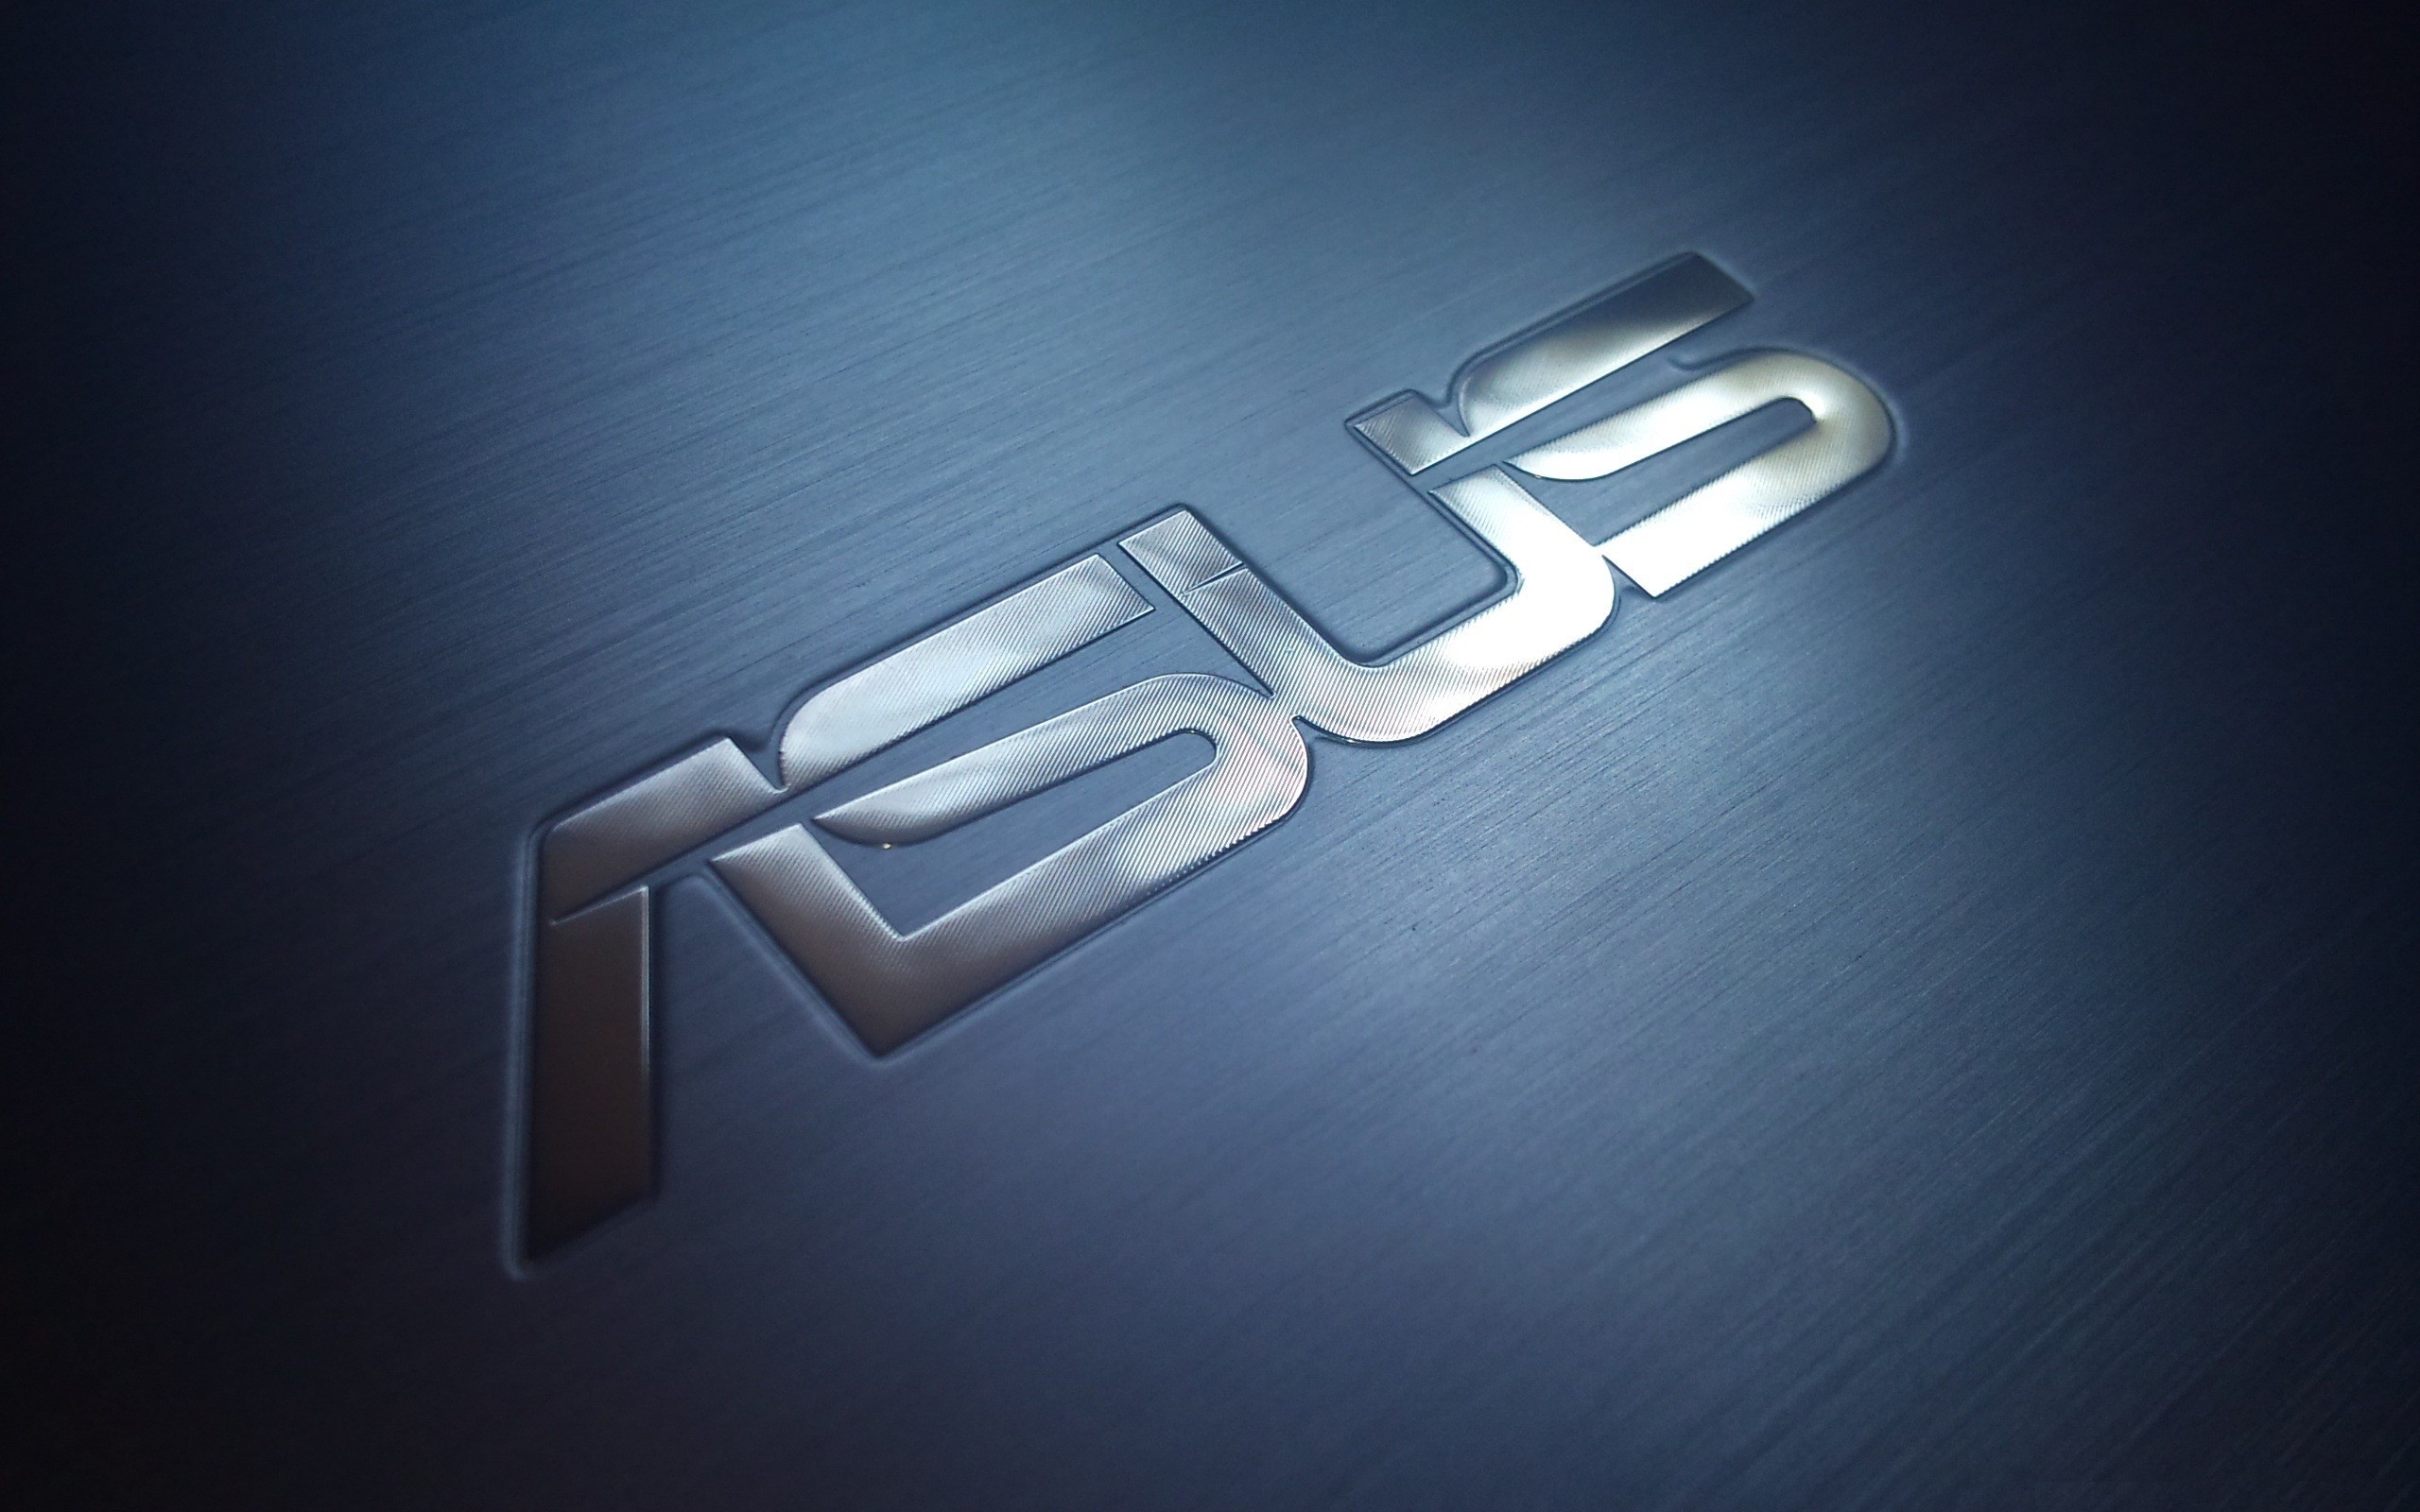 Asus hd logo 4k wallpapers images backgrounds photos - Asus x series wallpaper hd ...